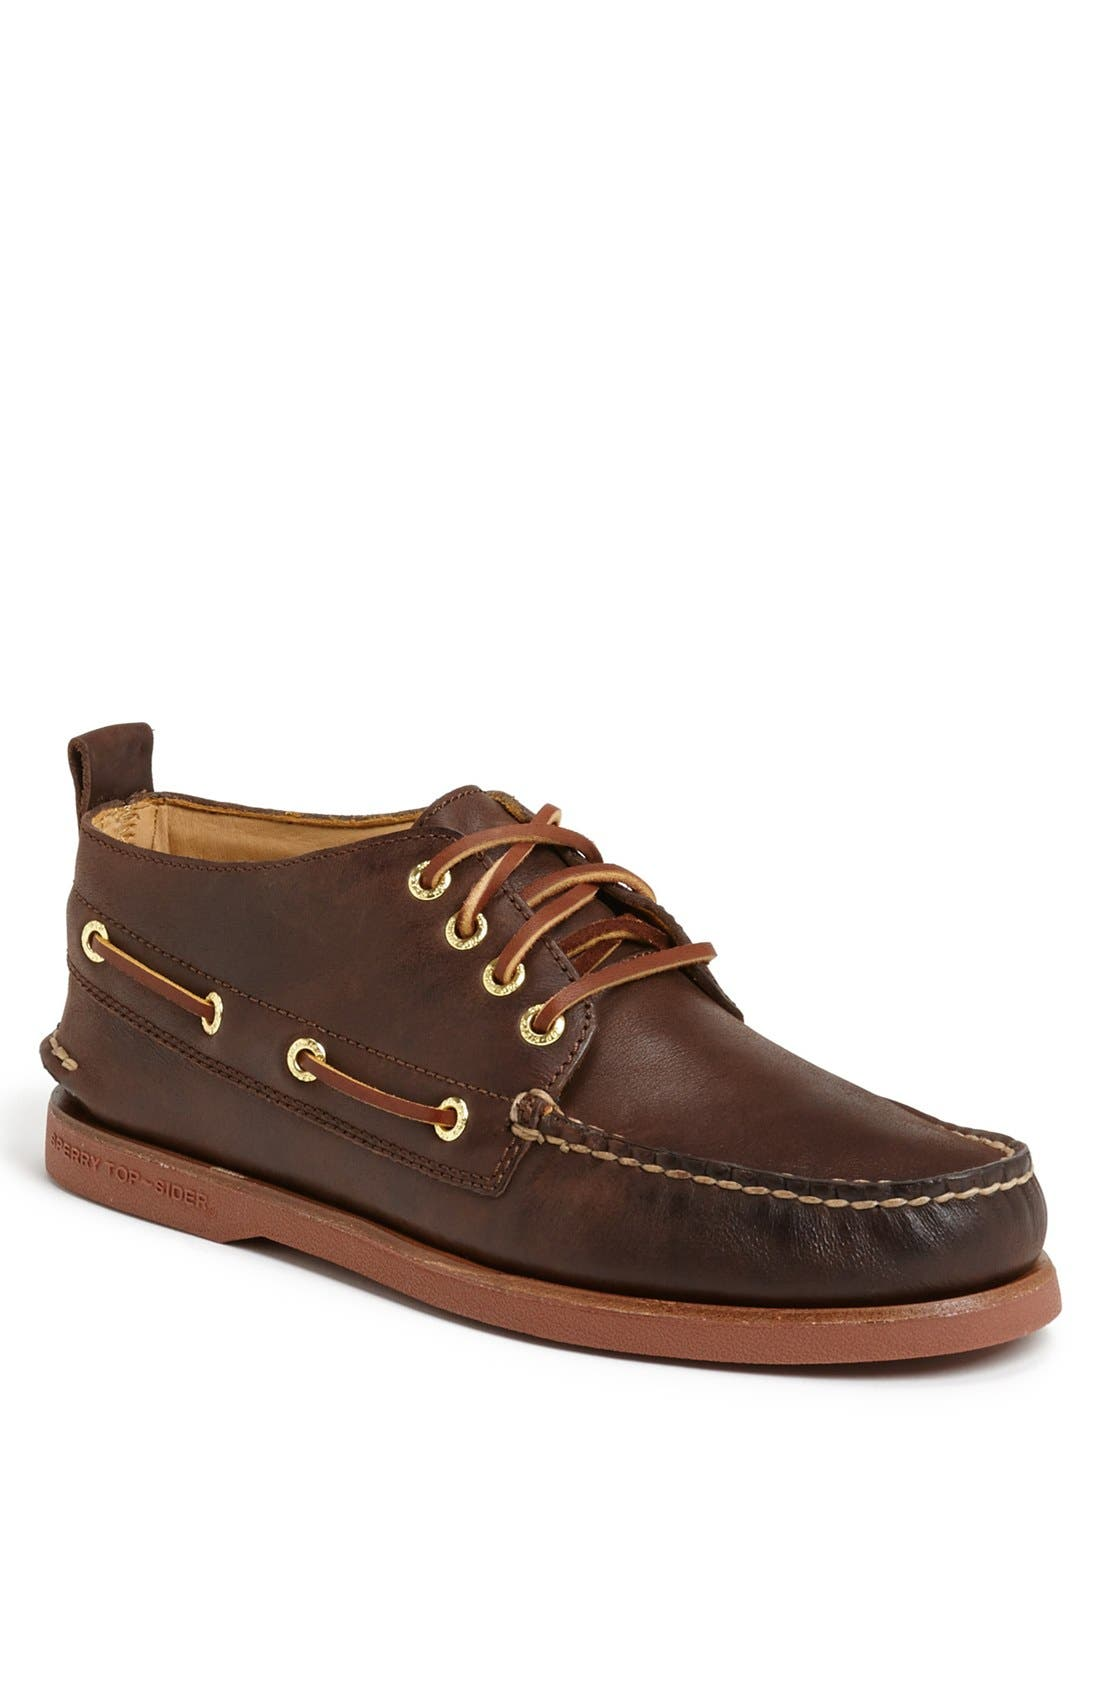 Alternate Image 1 Selected - Sperry Top-Sider® 'Gold Cup' Chukka Boot